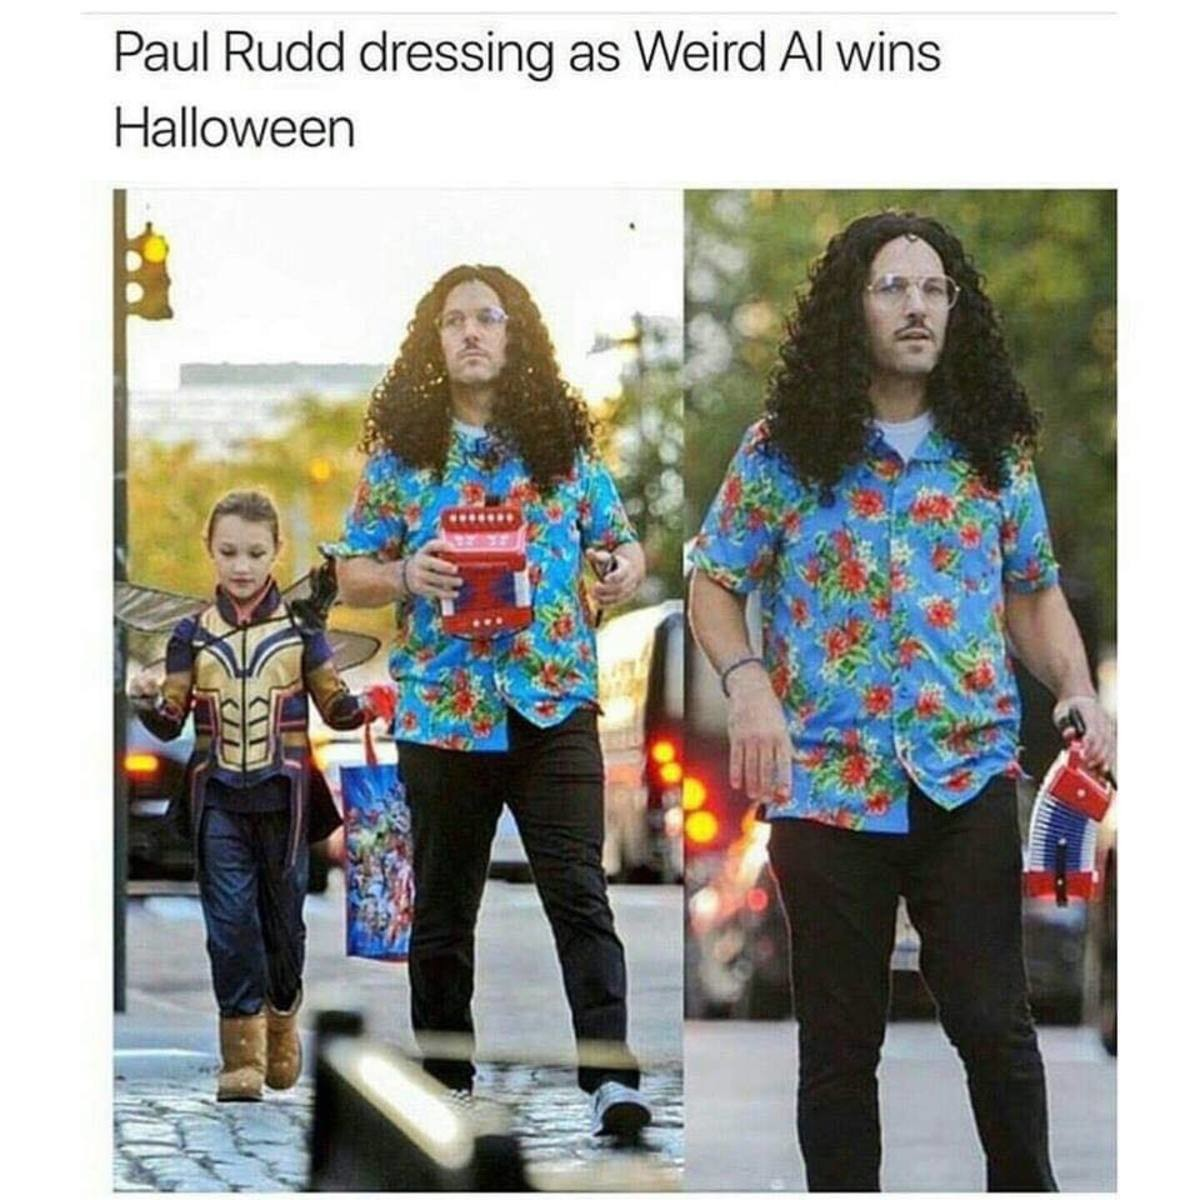 Howdy Al. .. Paul Rudds daughter dressed as Wasp which is obviously close enough to Ant-Man. Then there's Chris Pratt's kid...